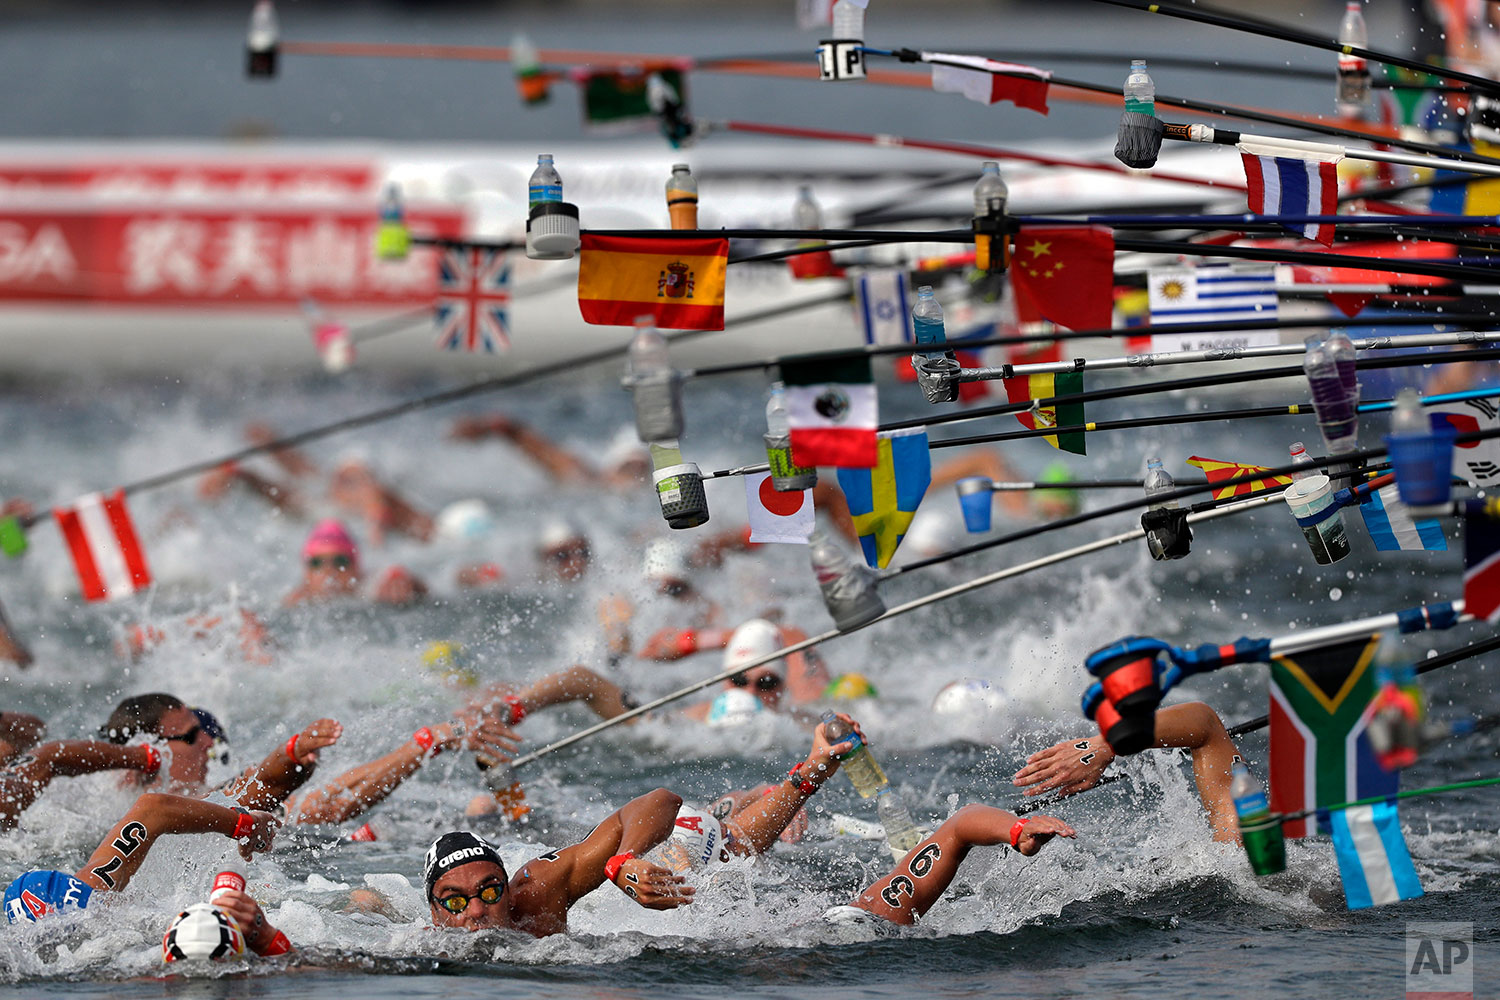 Swimmers reach for drink bottles while competing in the men's 10km open water swim at the World Swimming Championships in Yeosu, South Korea, Tuesday, July 16, 2019. (AP Photo/Mark Schiefelbein)